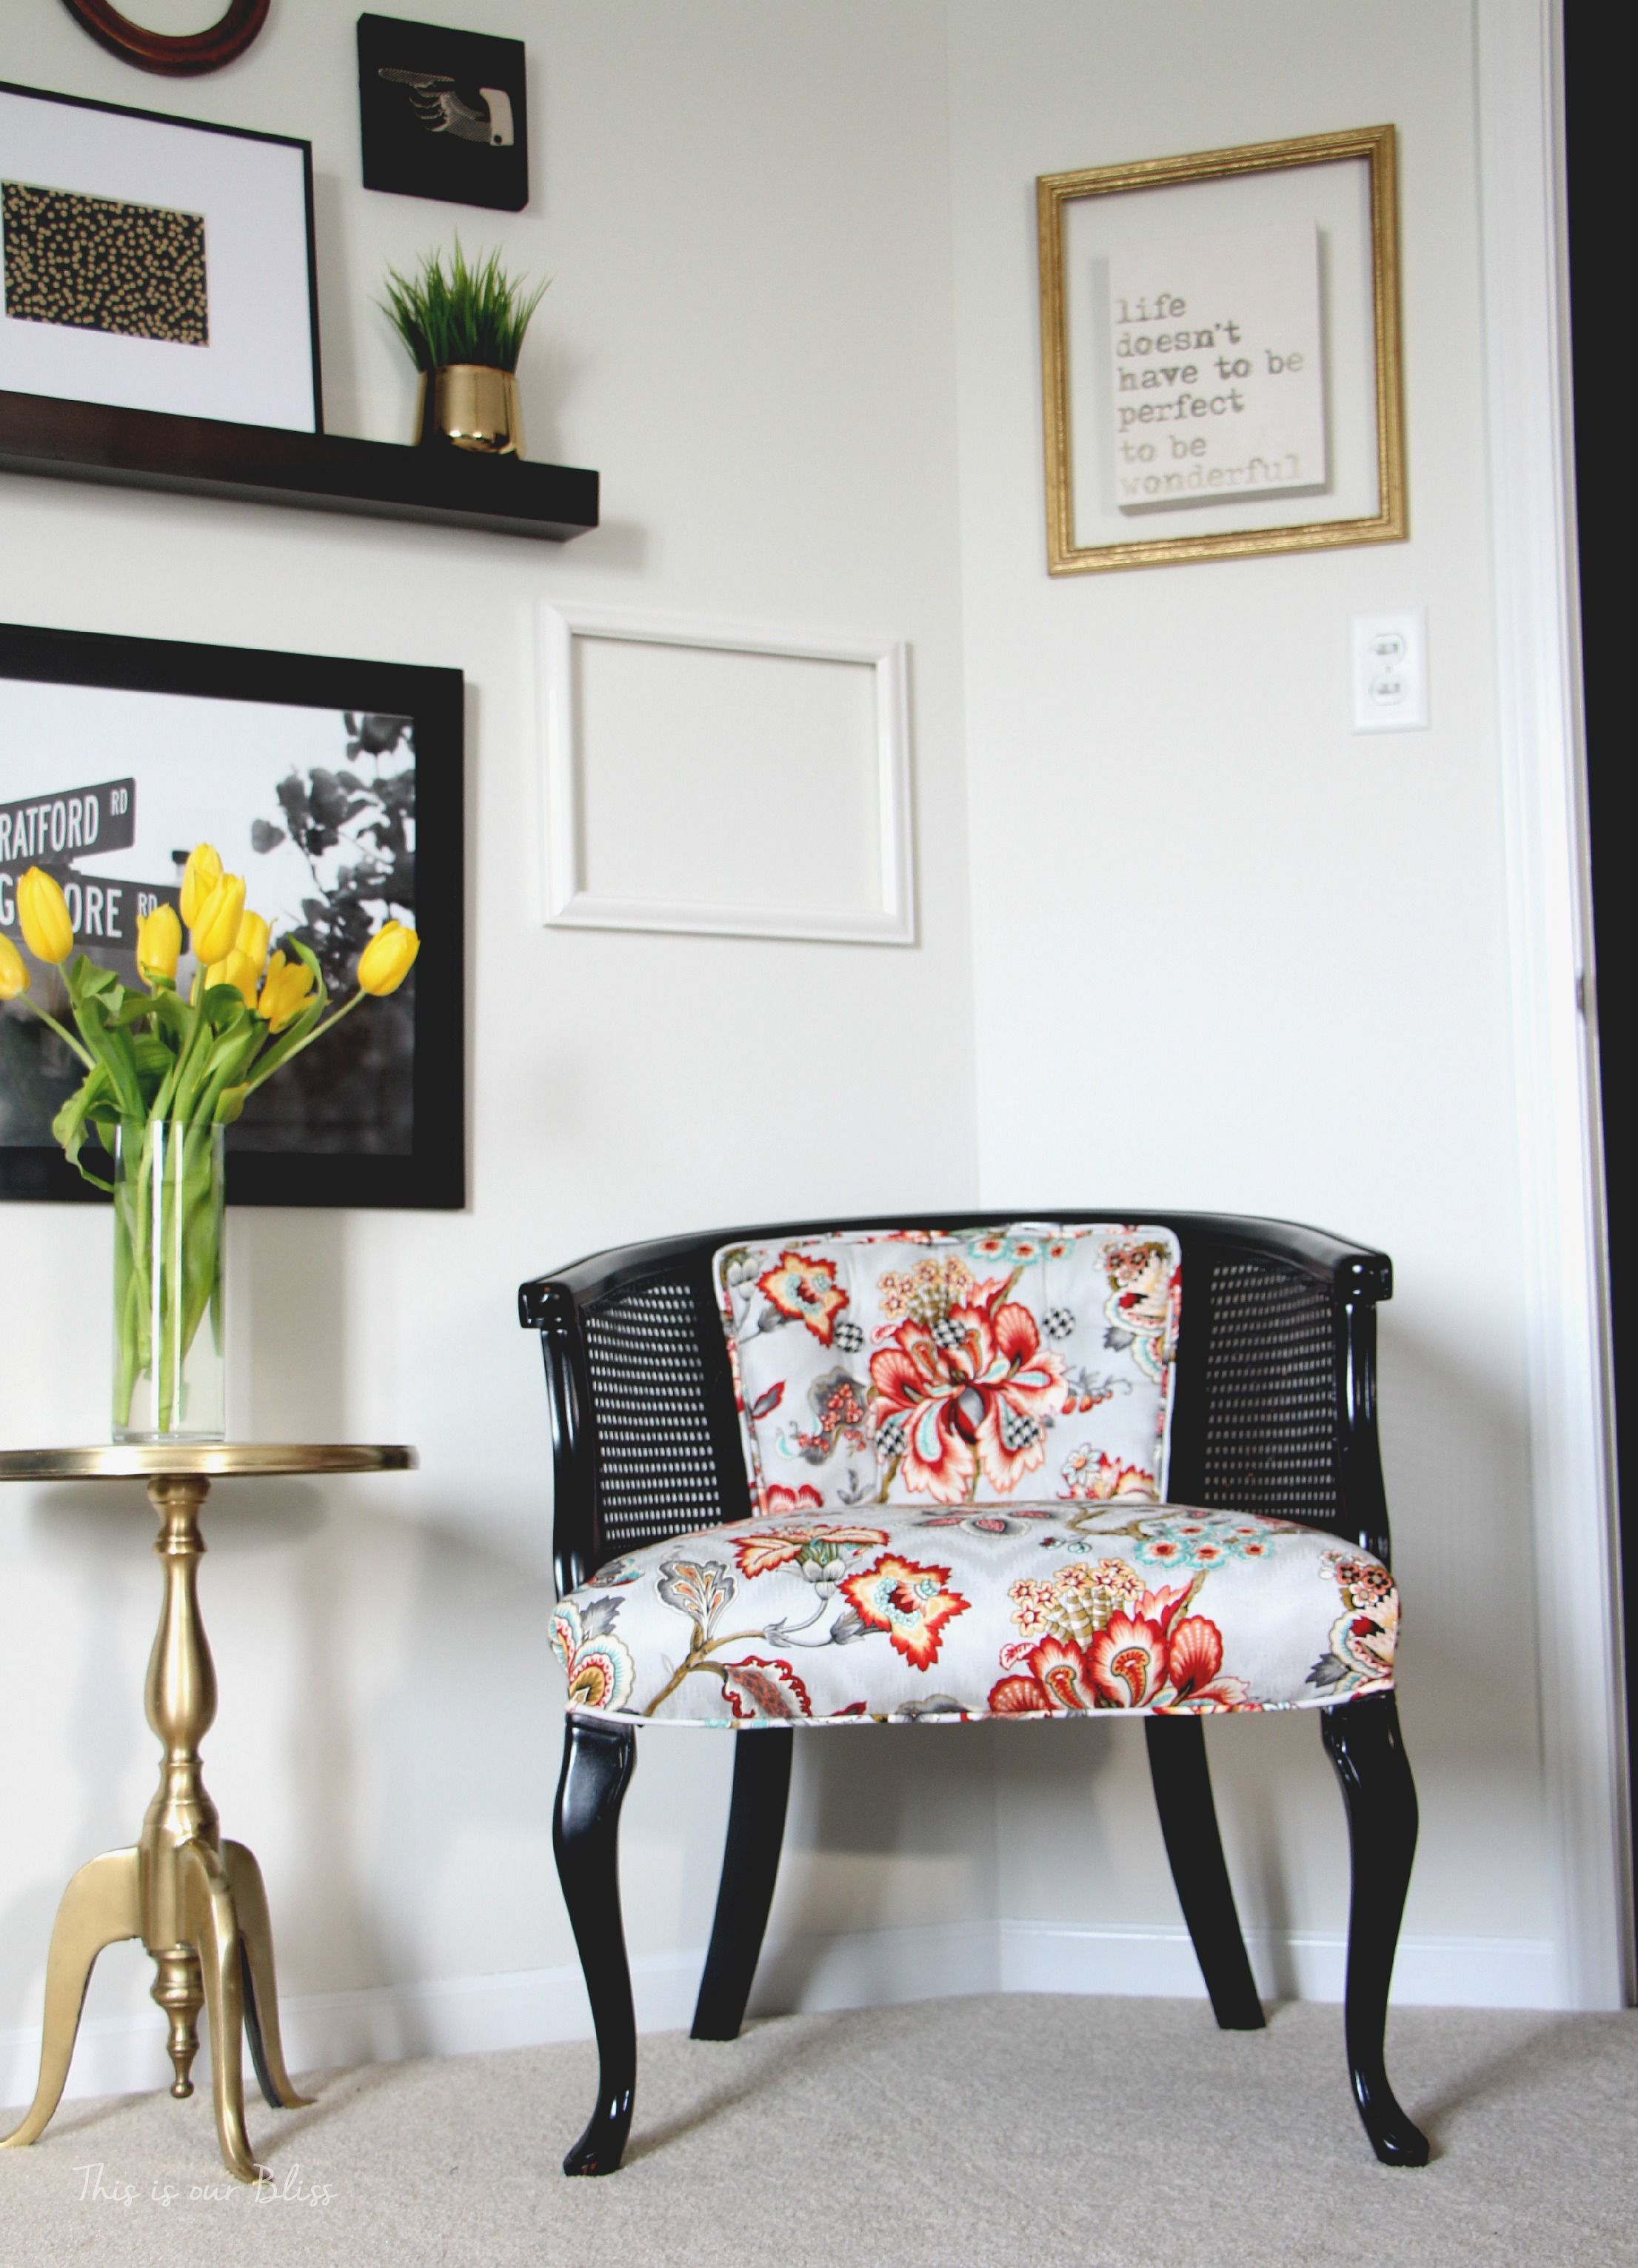 guestroom reveal furniture picture ledge guest room picture wall rh pinterest co uk